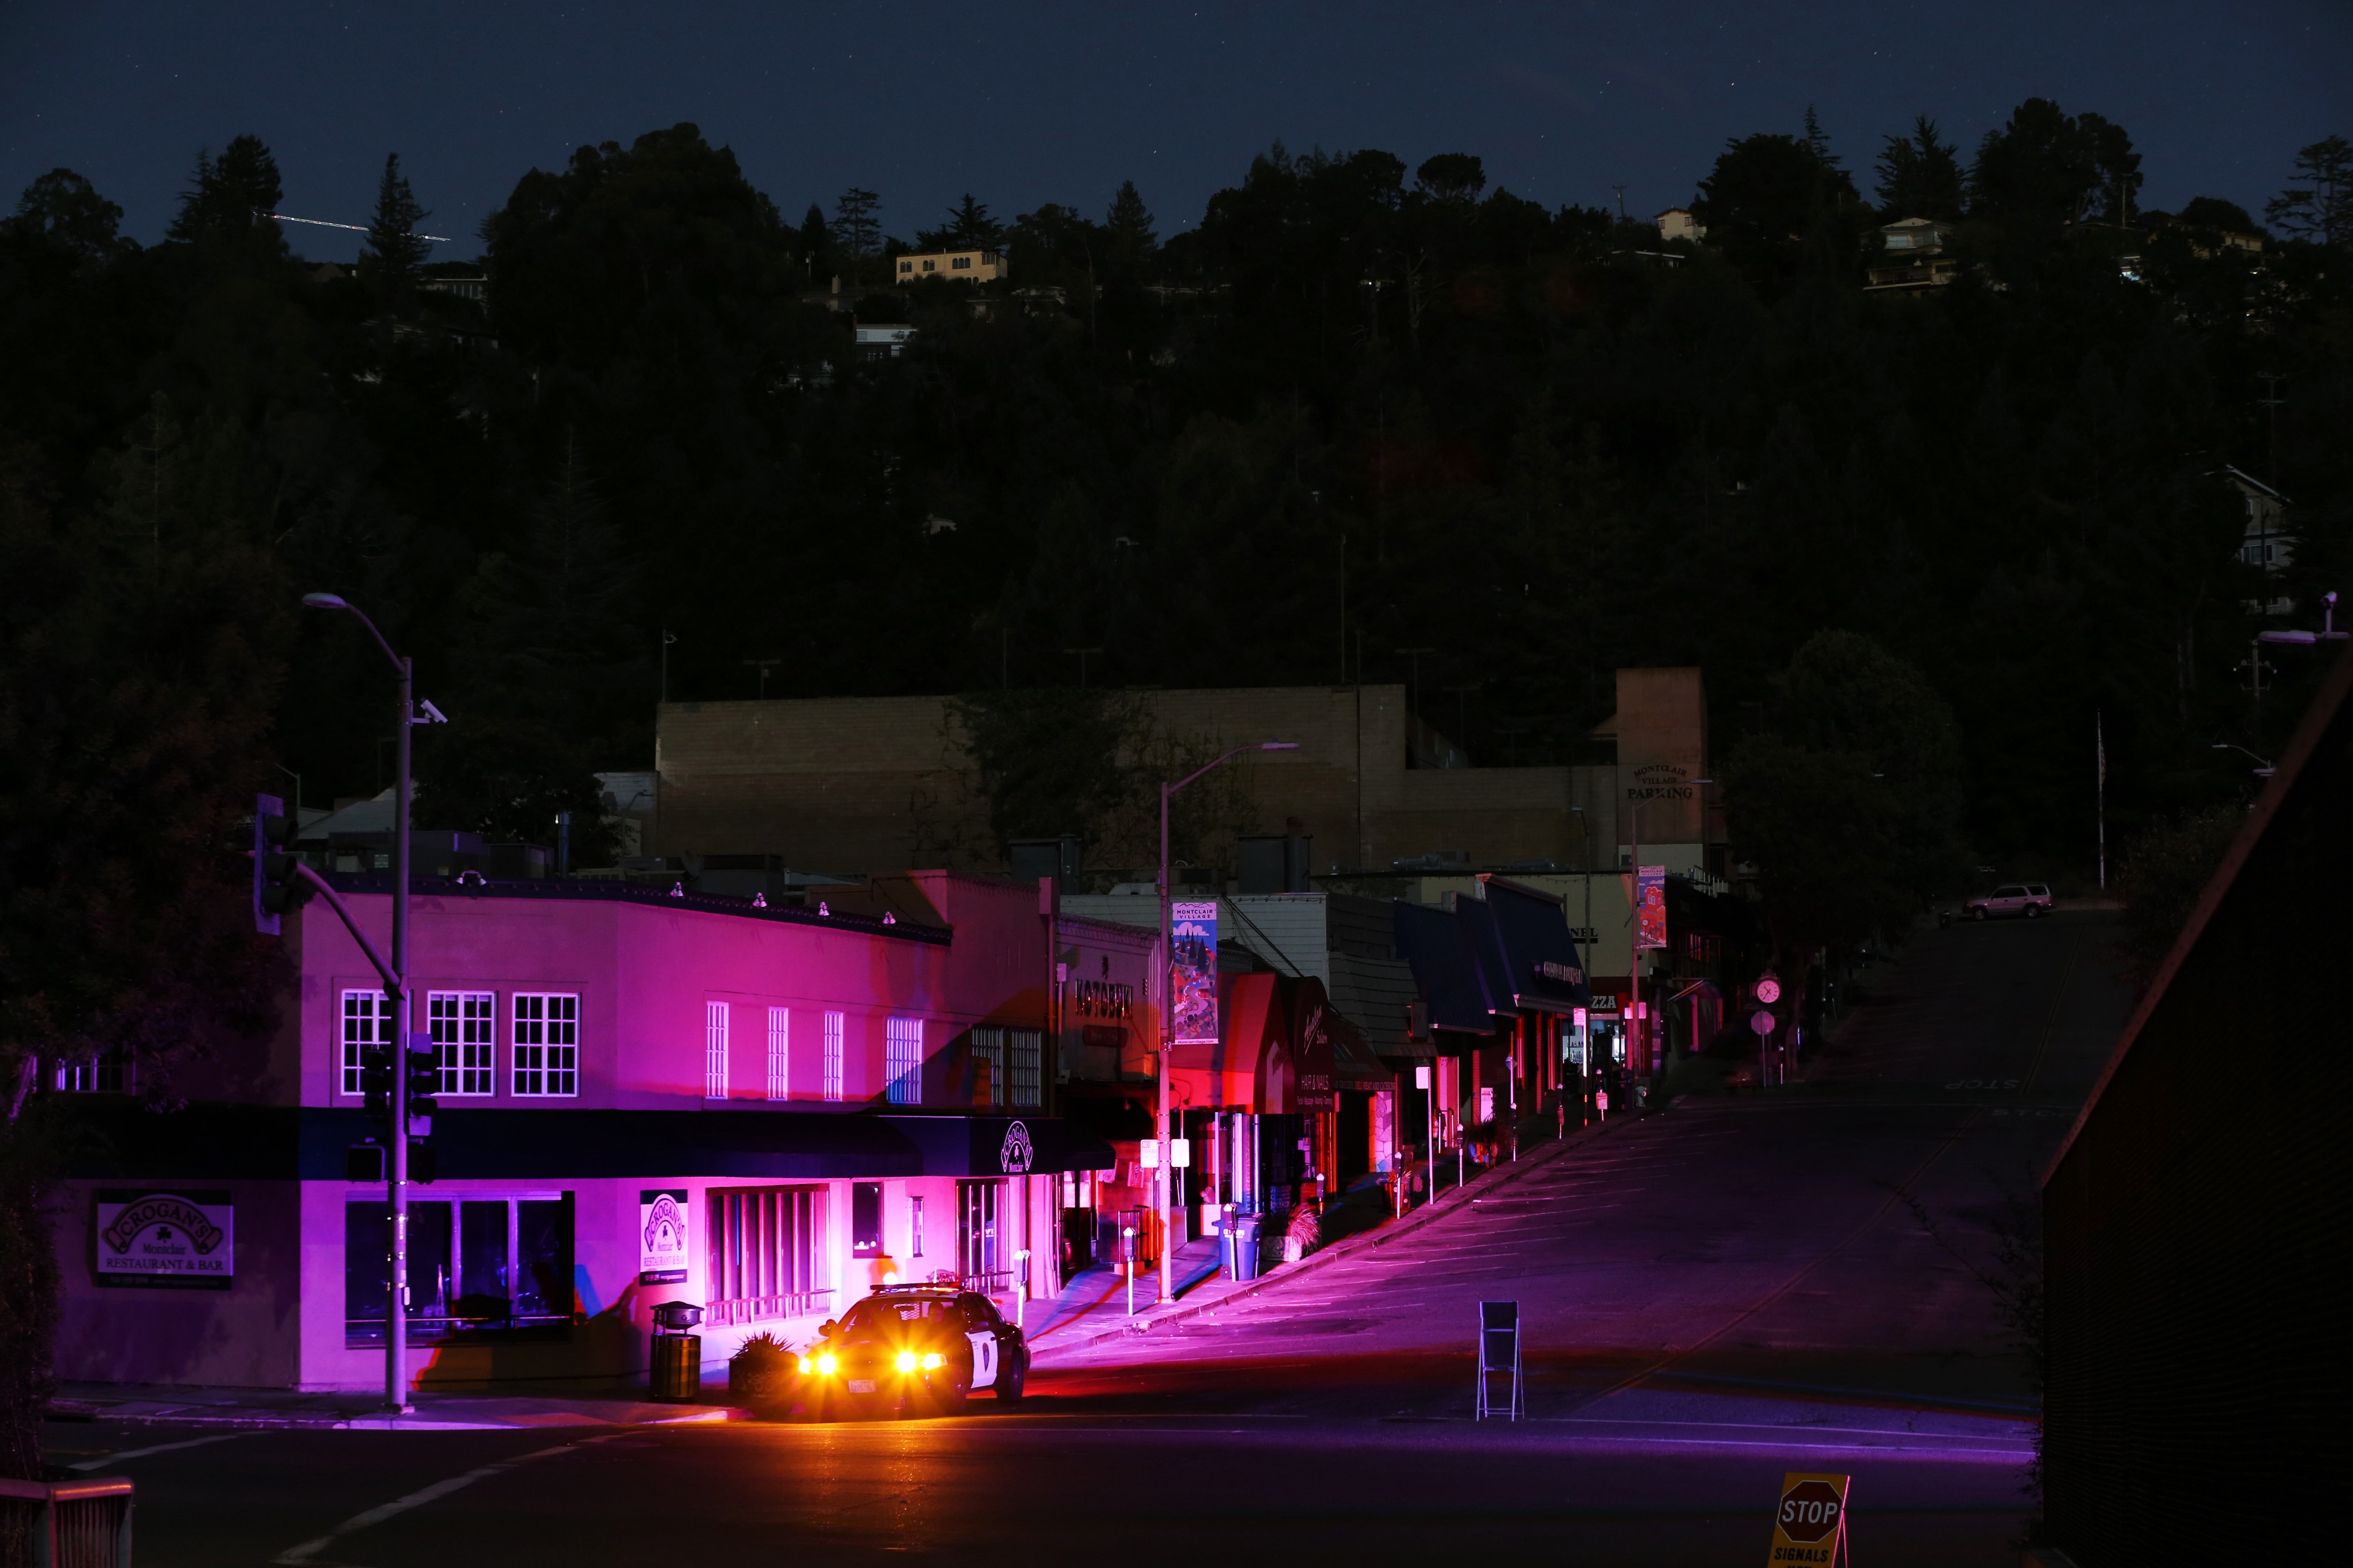 An Oakland police cruiser has its lights on in the Montclair shopping district during the PG&E California power outage.